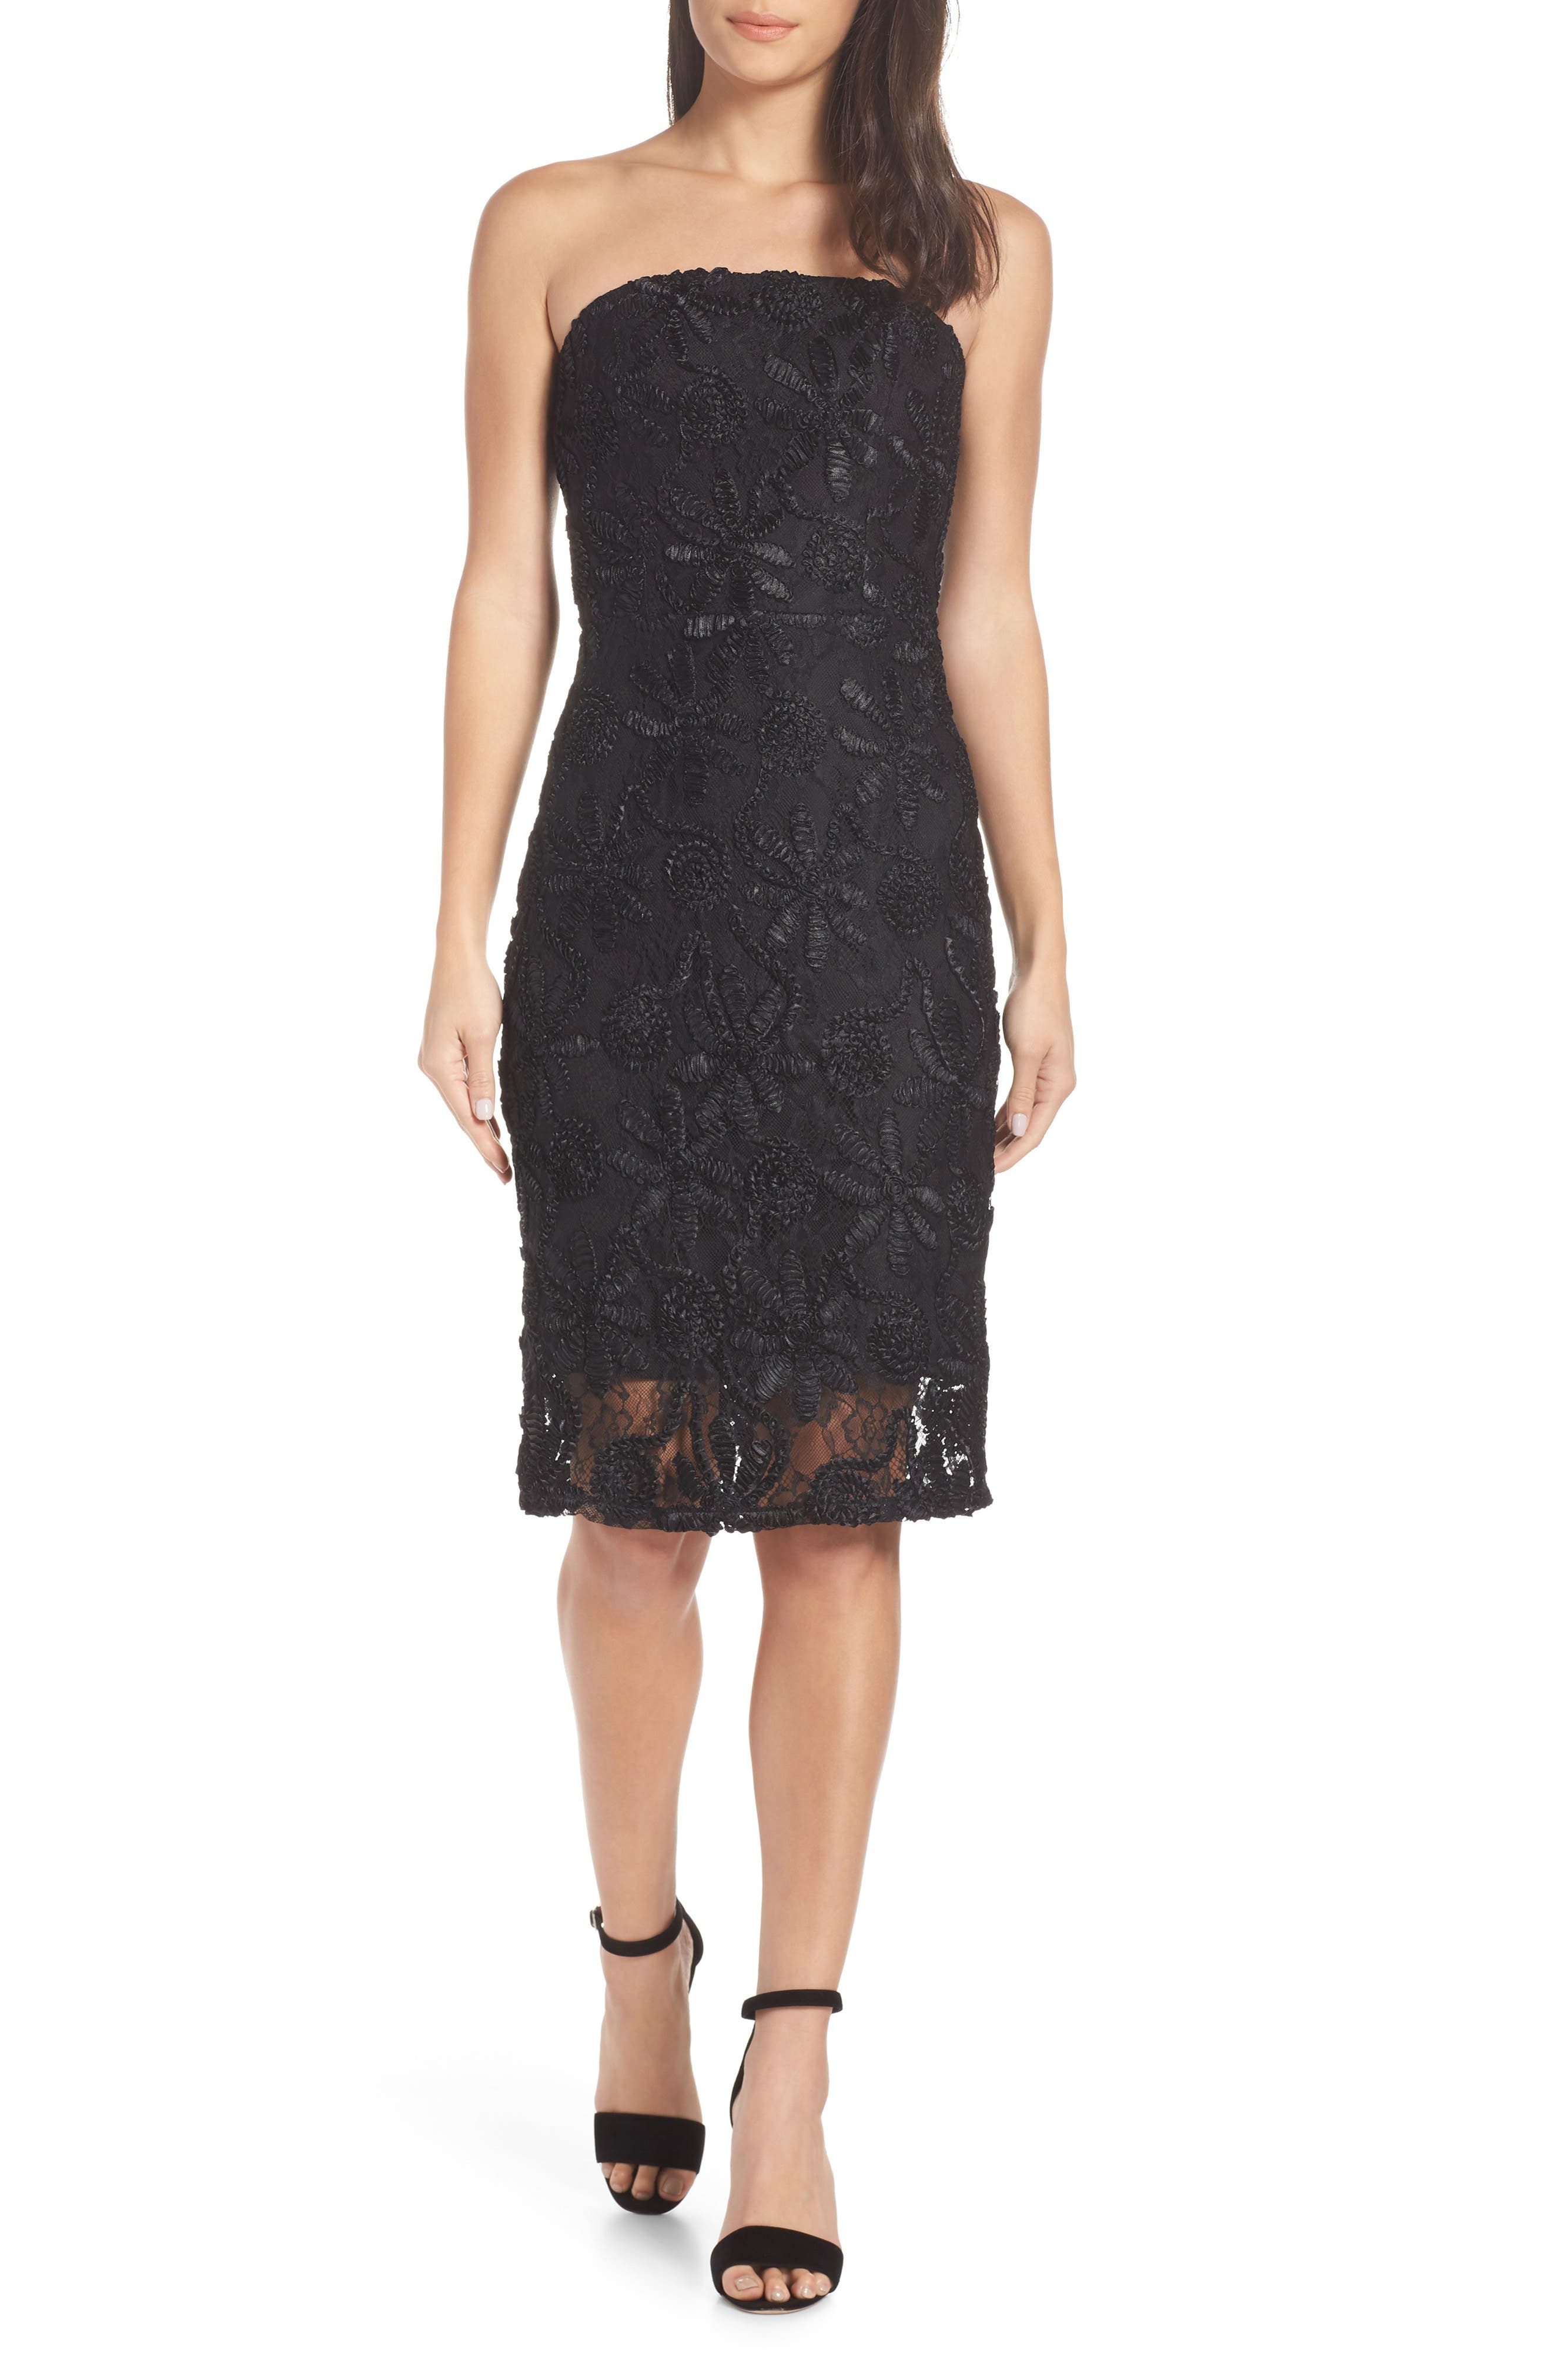 ADELYN RAE Healy Strapless Lace Sheath Dress in Black